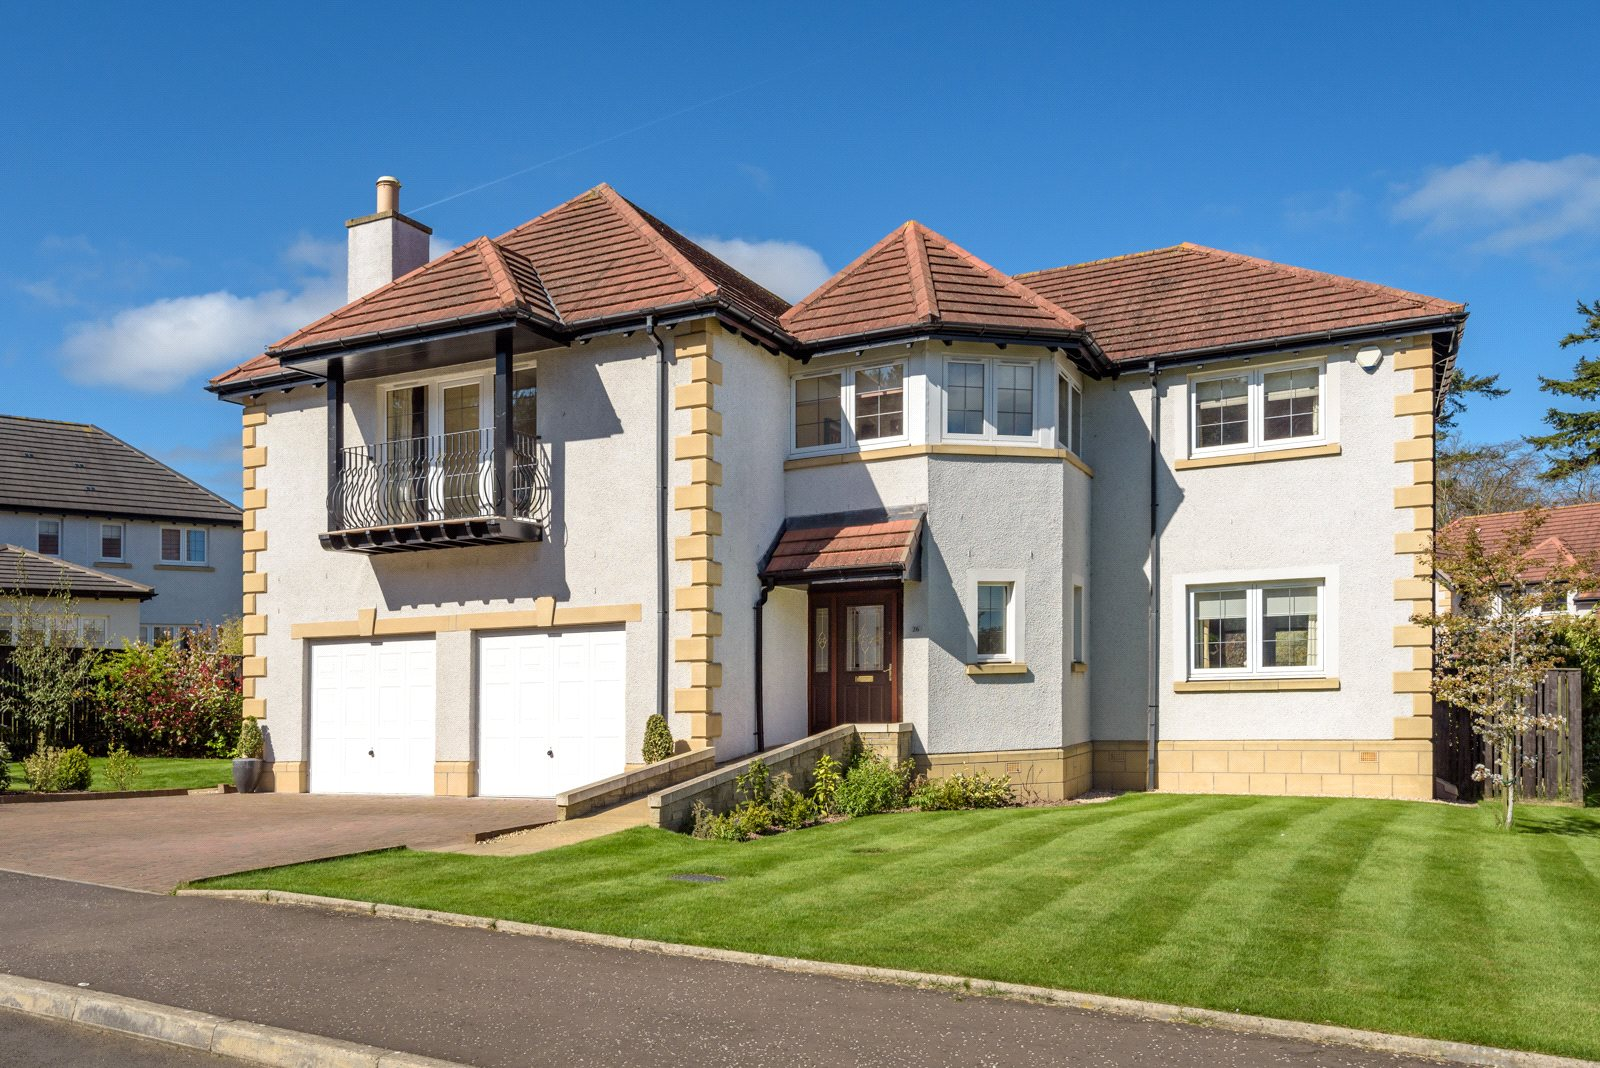 5 Bedrooms Detached House for sale in 26 Beechgrove Rise, Cupar, Fife, KY15